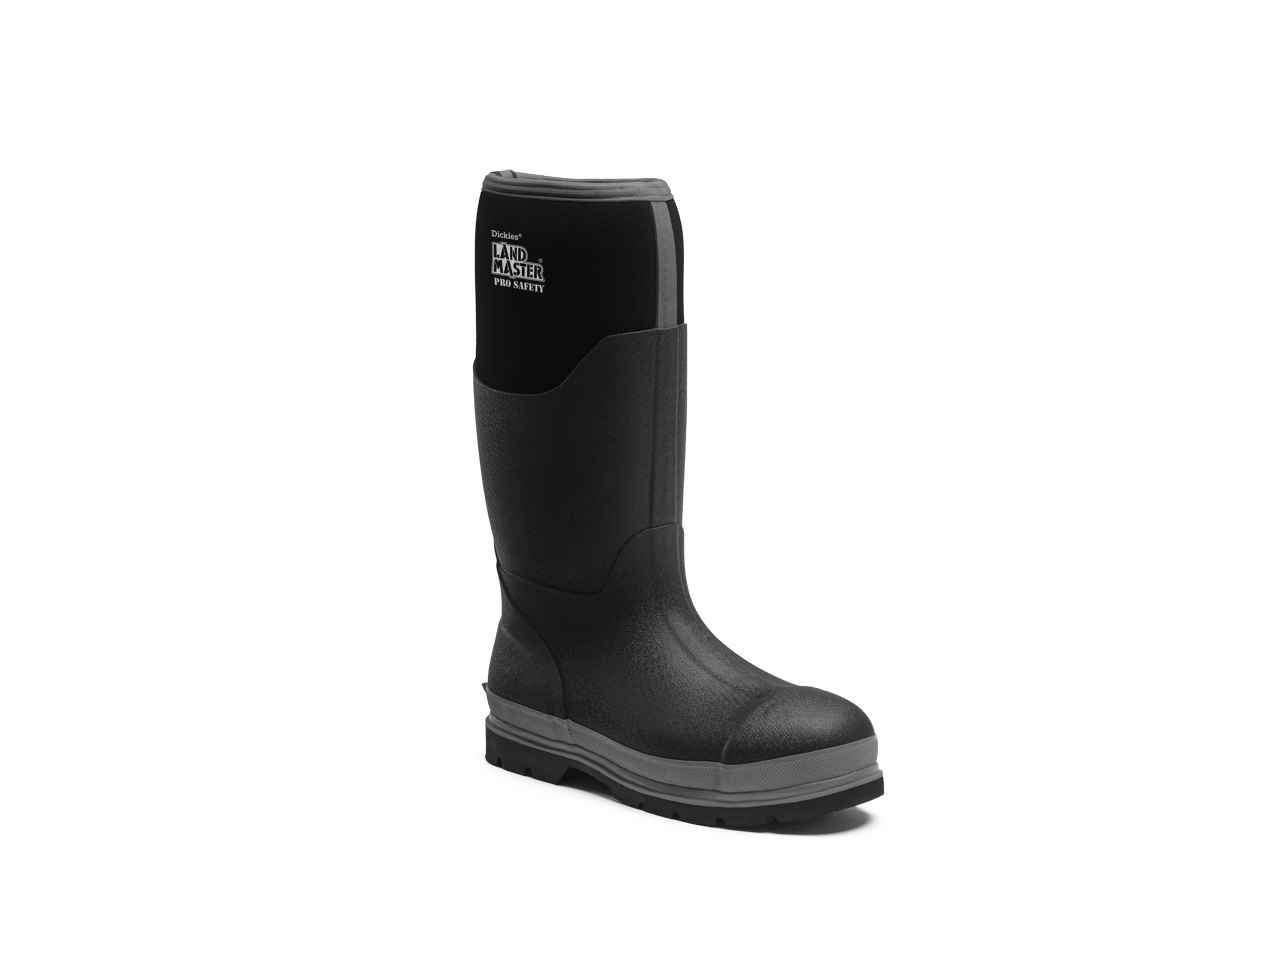 OX Tools Safety Wellington Boots Steel Toe and Midsole Steel Toe Capped Wellies